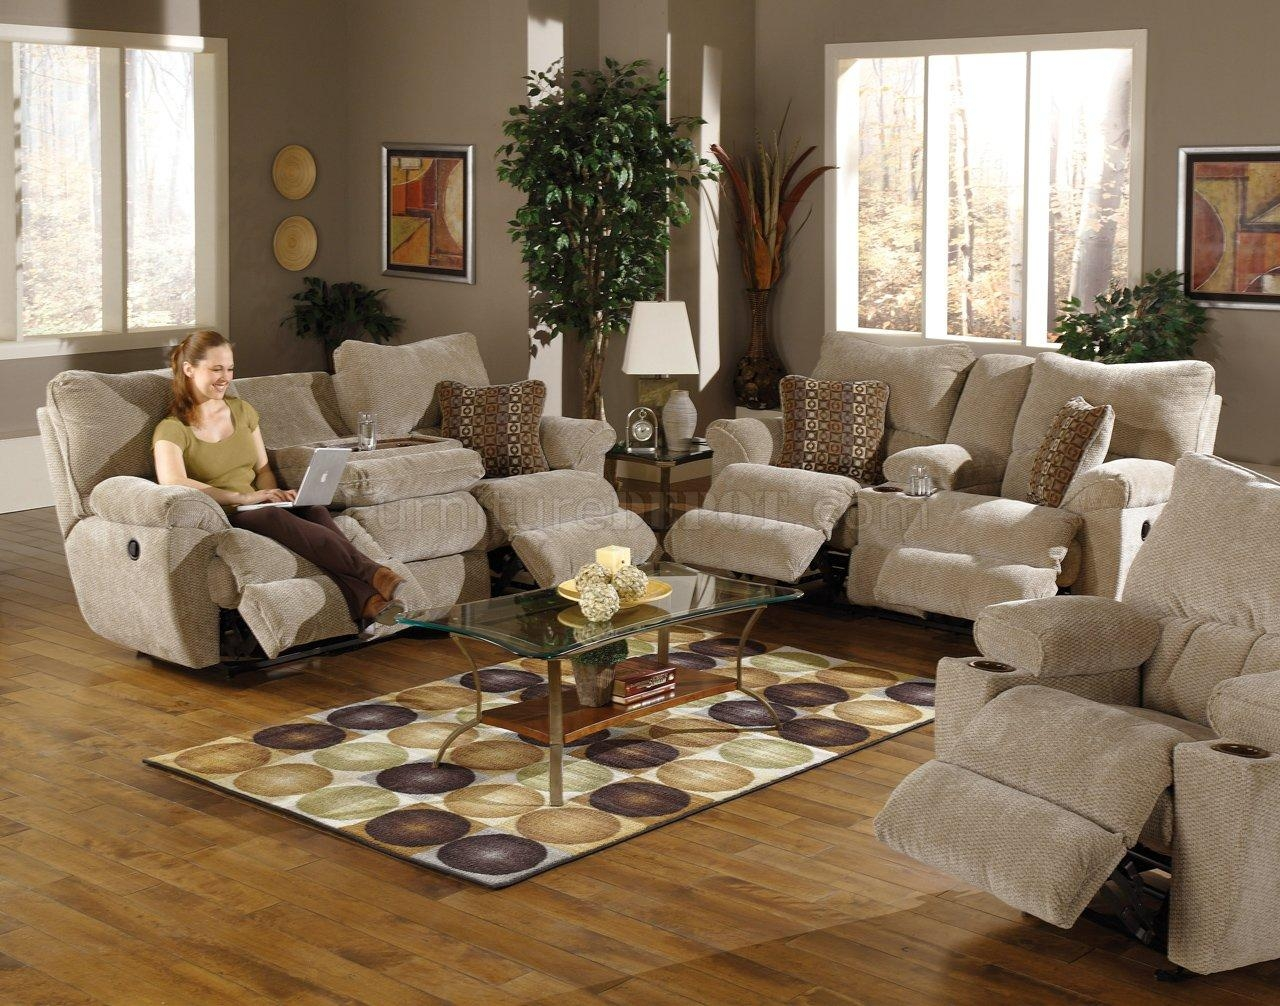 Chenille Sofas And Loveseats | Tehranmix Decoration Throughout Sofas And Loveseats (View 4 of 20)